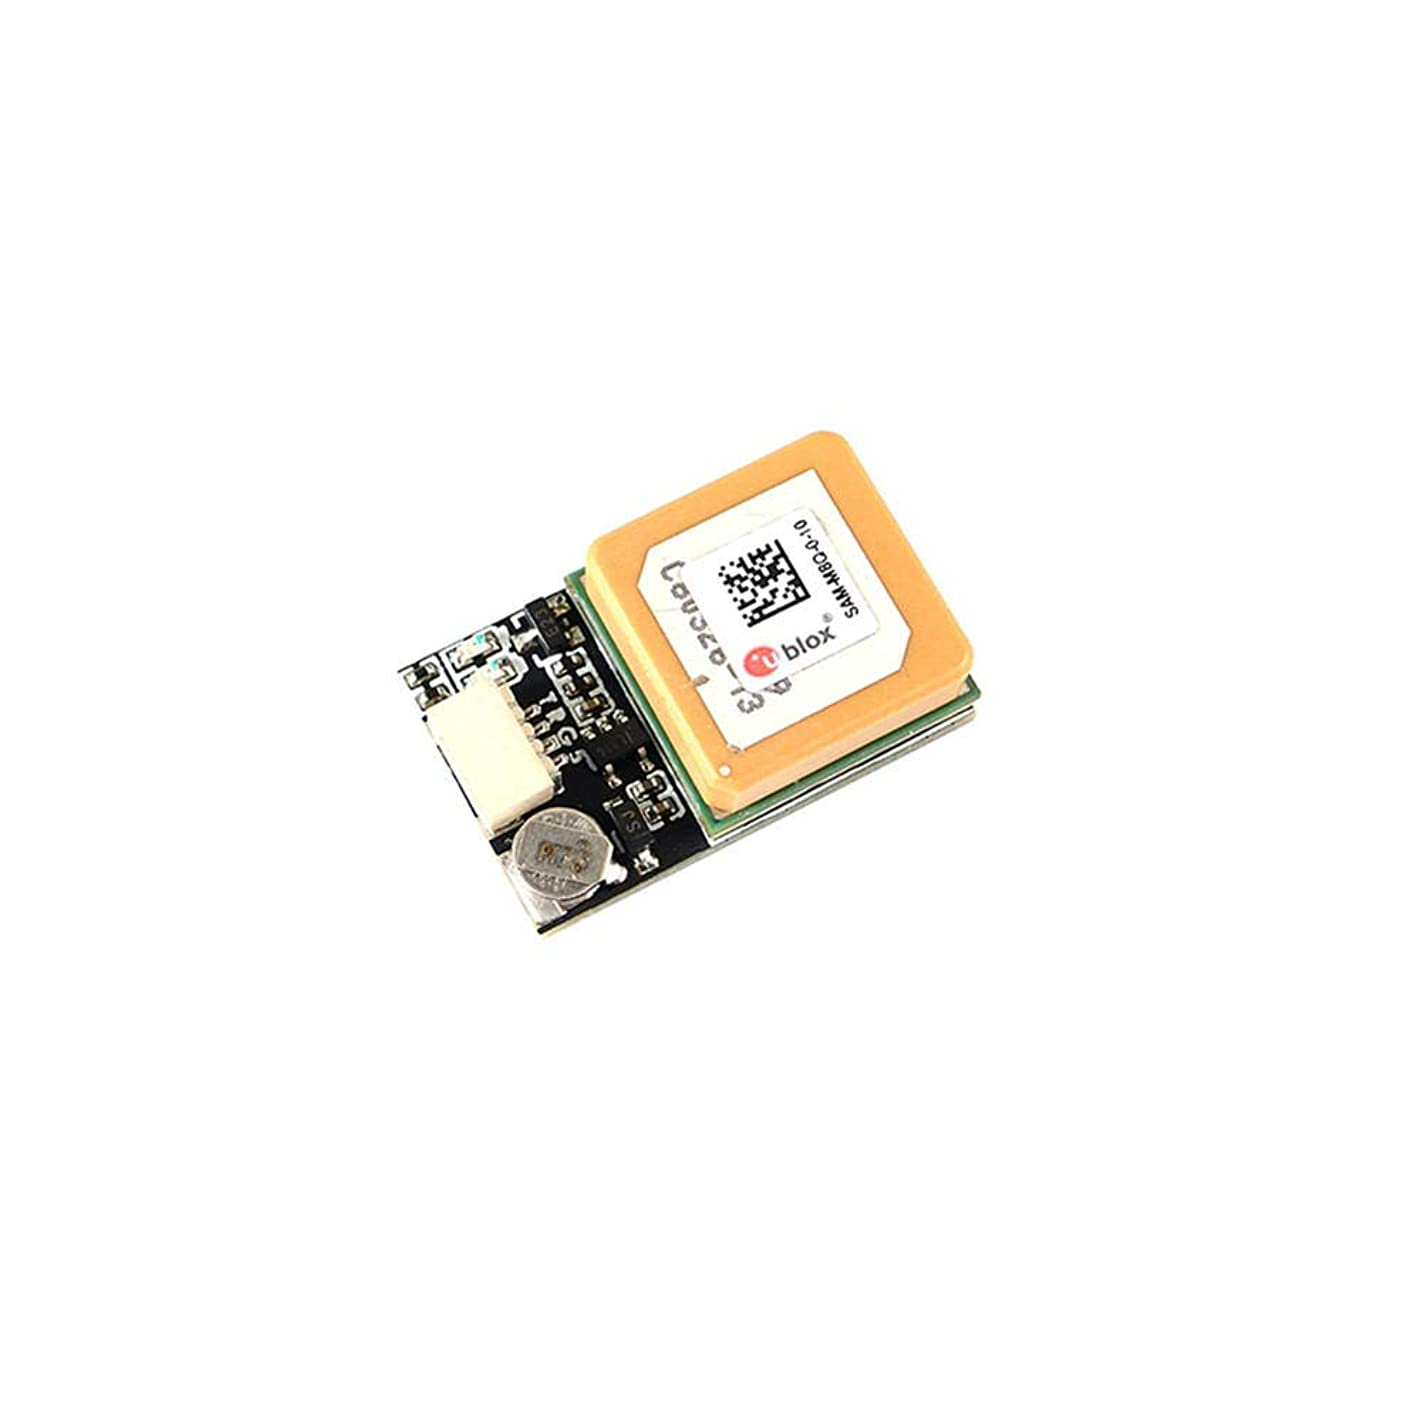 Alician Matek Systems Ublox SAM-M8Q GPS Module Support GLONASS Galileo QZSS SBAS for RC Drone FPV Racing